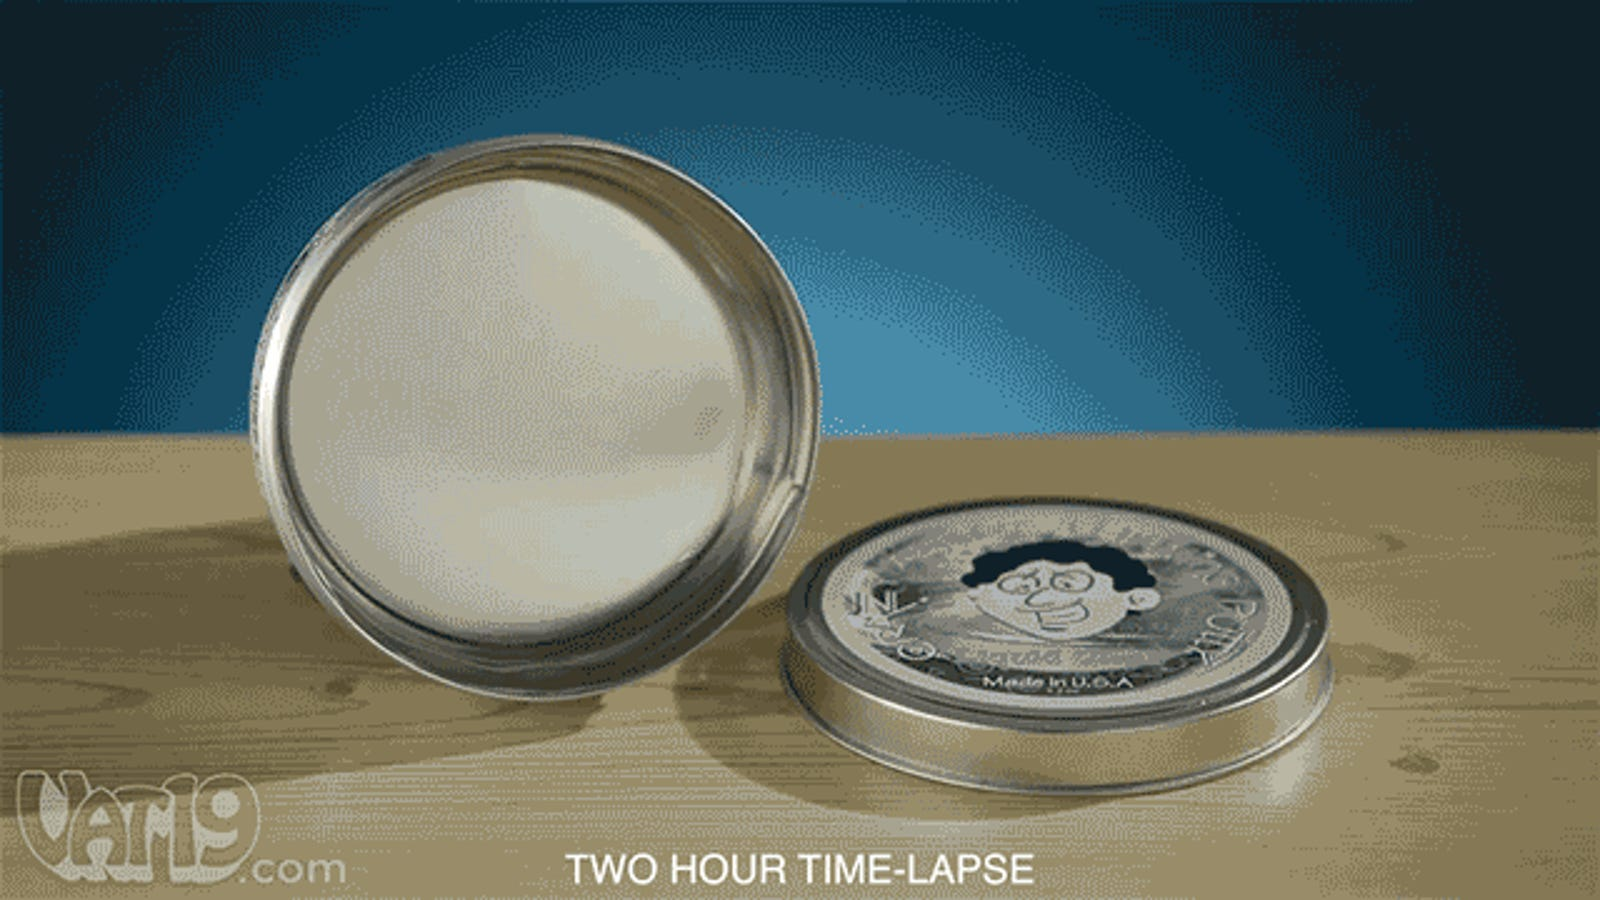 Crystal Clear Putty Is Like Playing With Molten Glass (Minus Burns)